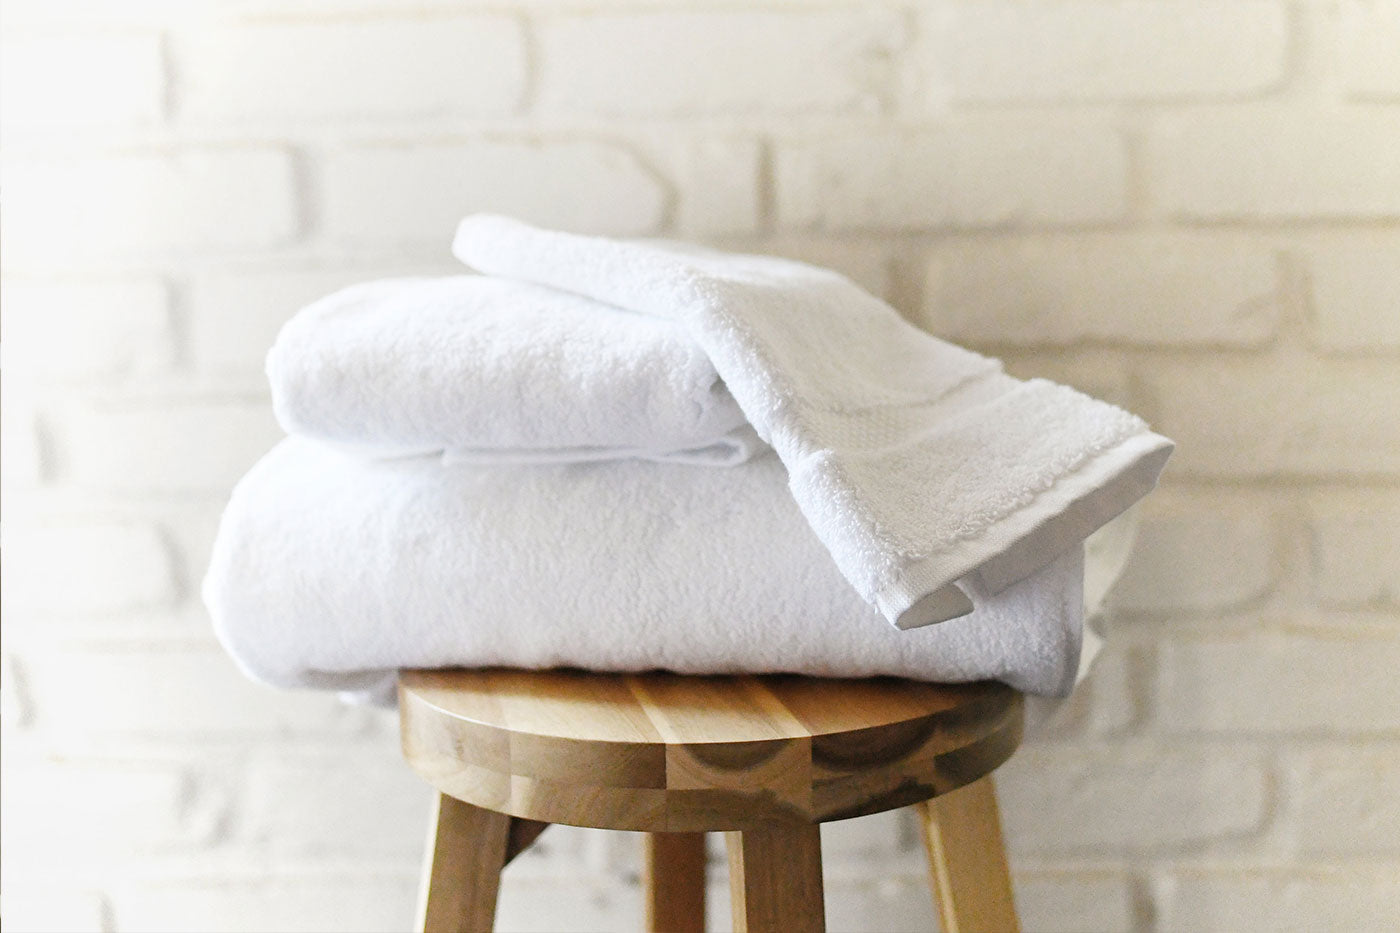 A stack of white luxury Supima cotton bath towels.